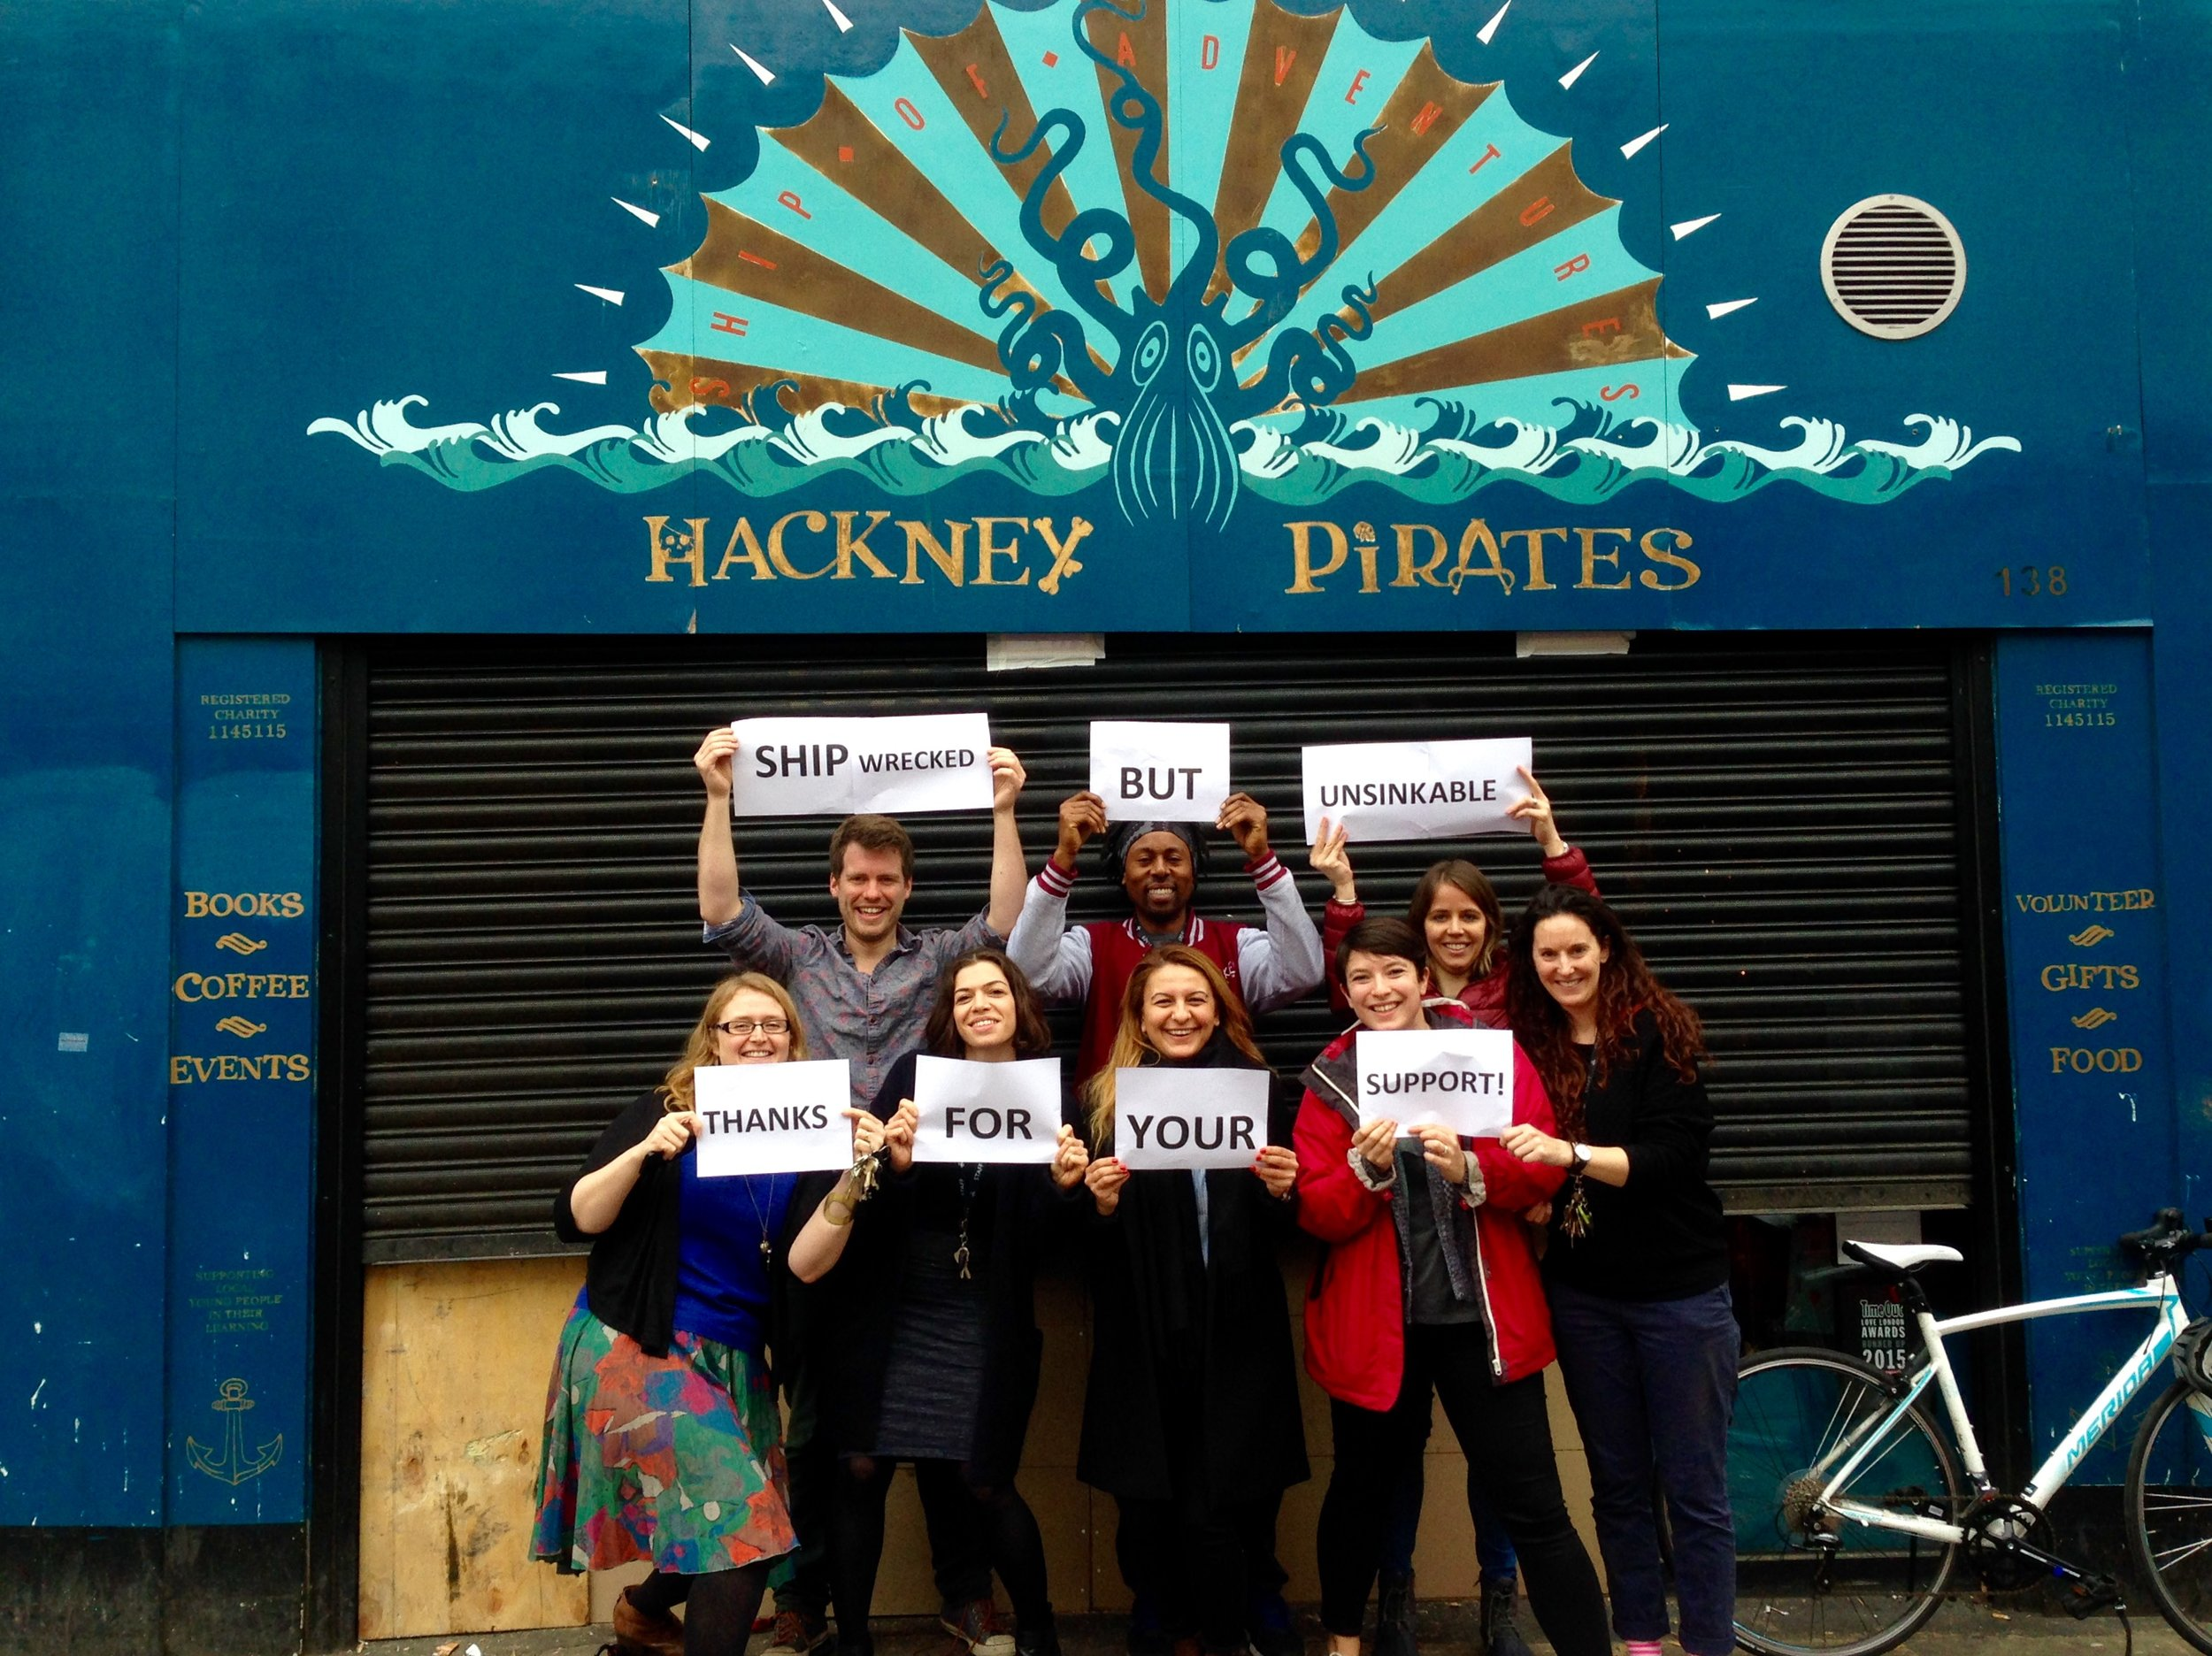 Hackney Pirates - Shipwrecked but unsinkable